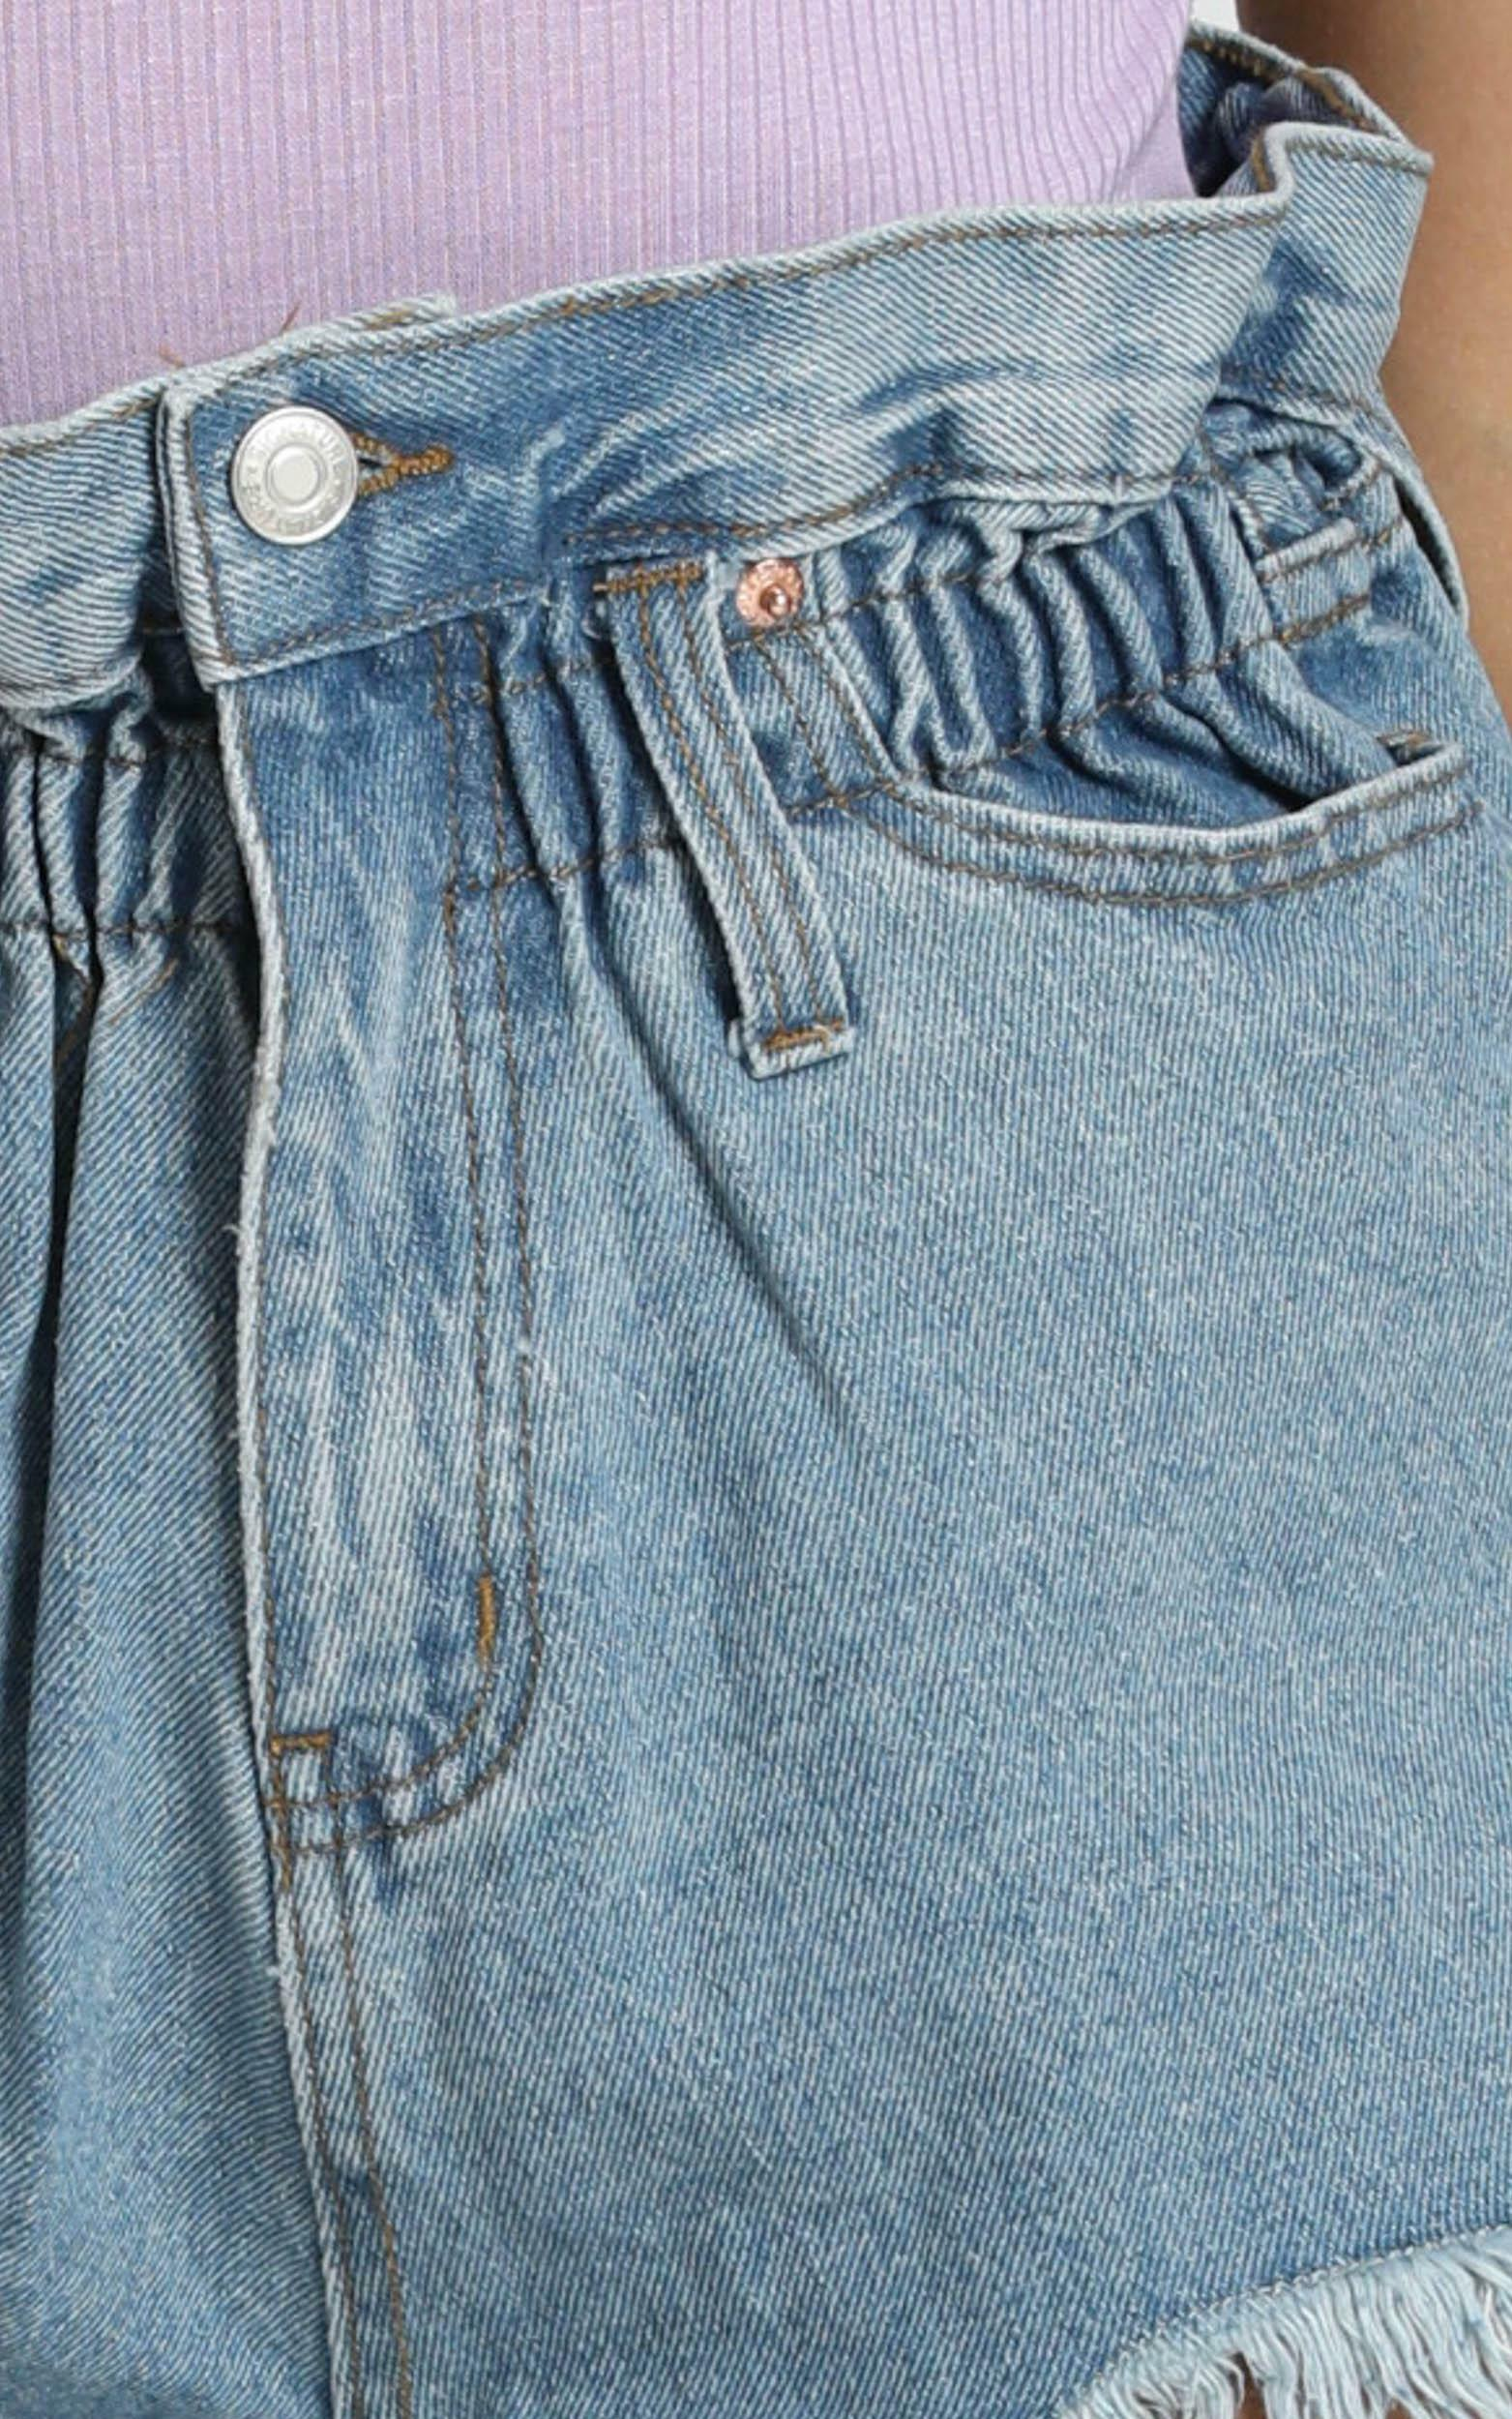 Wannabe Babe Shorts in Mid Wash - 8 (S), Blue, hi-res image number null